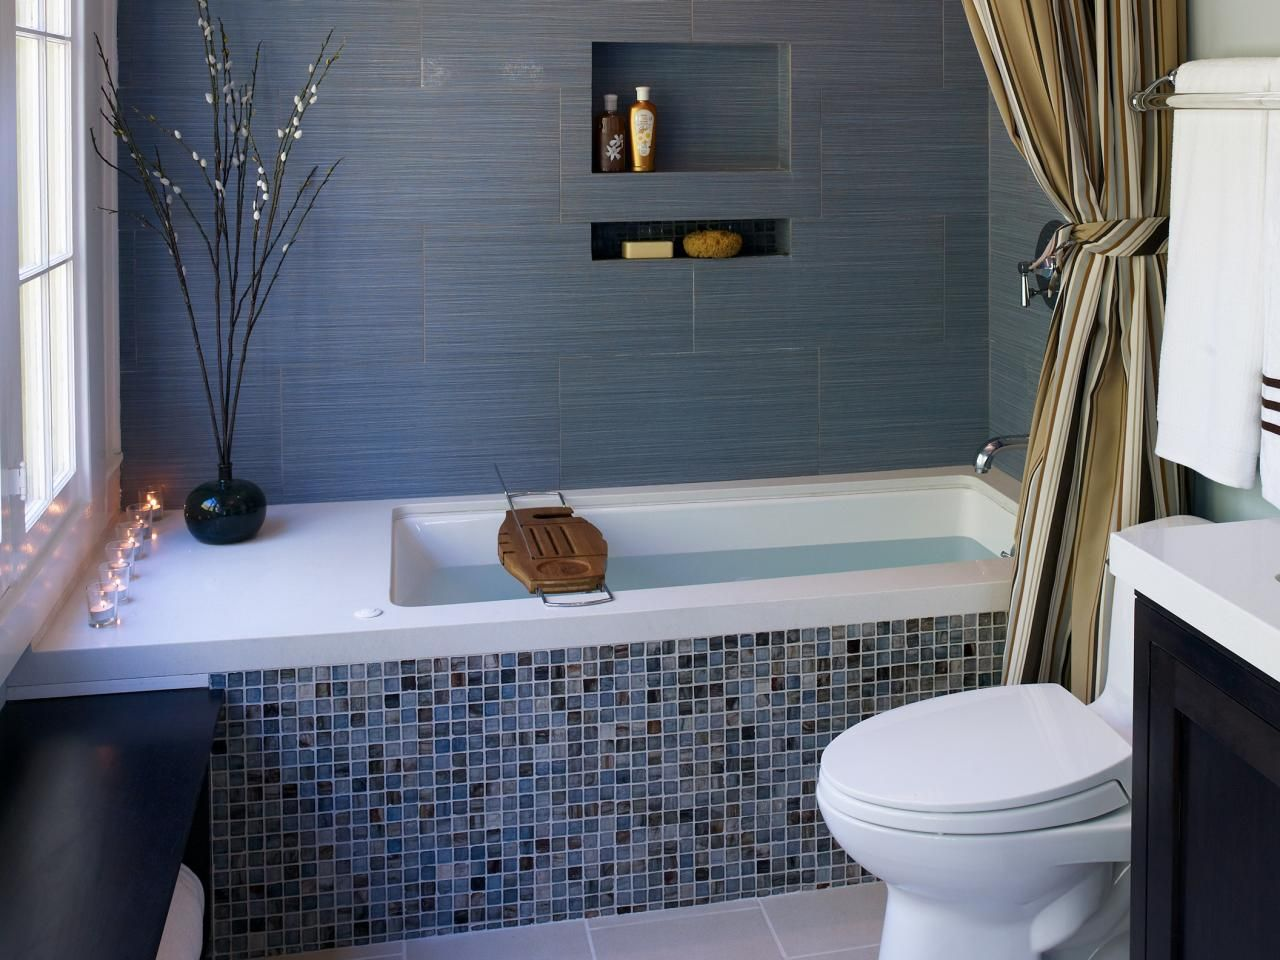 Small Baths With Big Style | Hgtv, Bath remodel and Bathroom designs